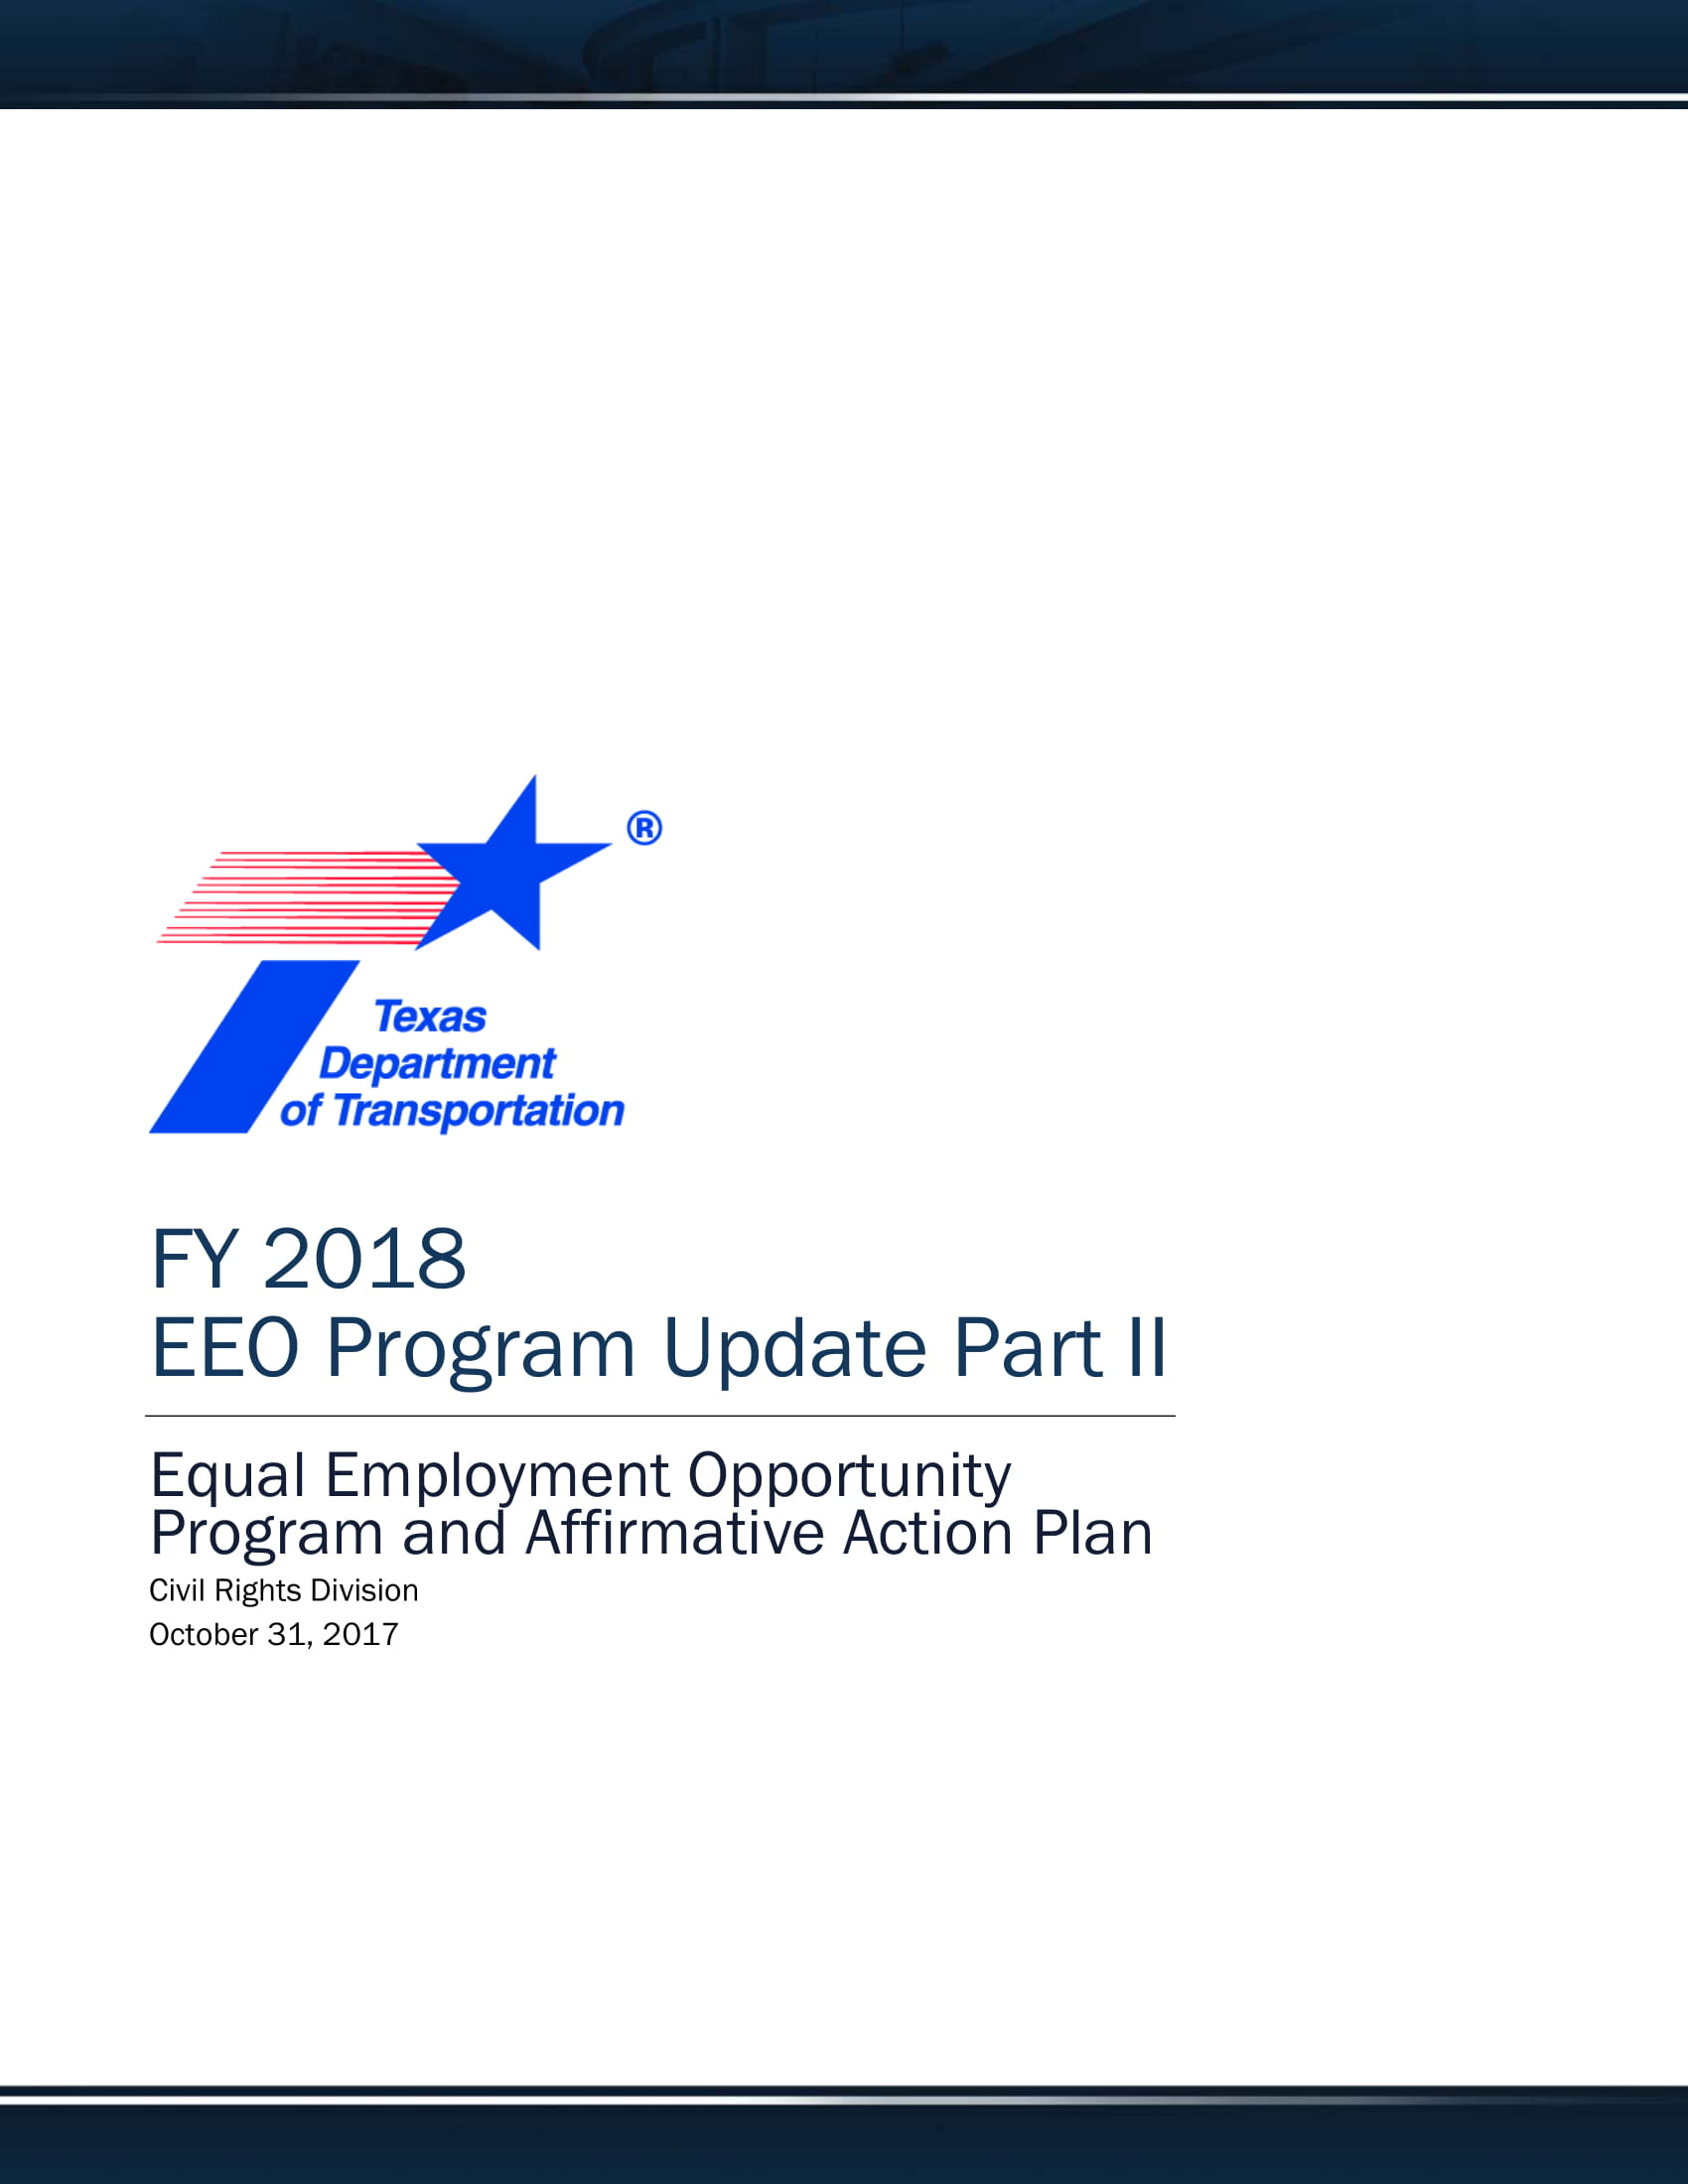 equal employment opportunity program and affirmative action plan example 01